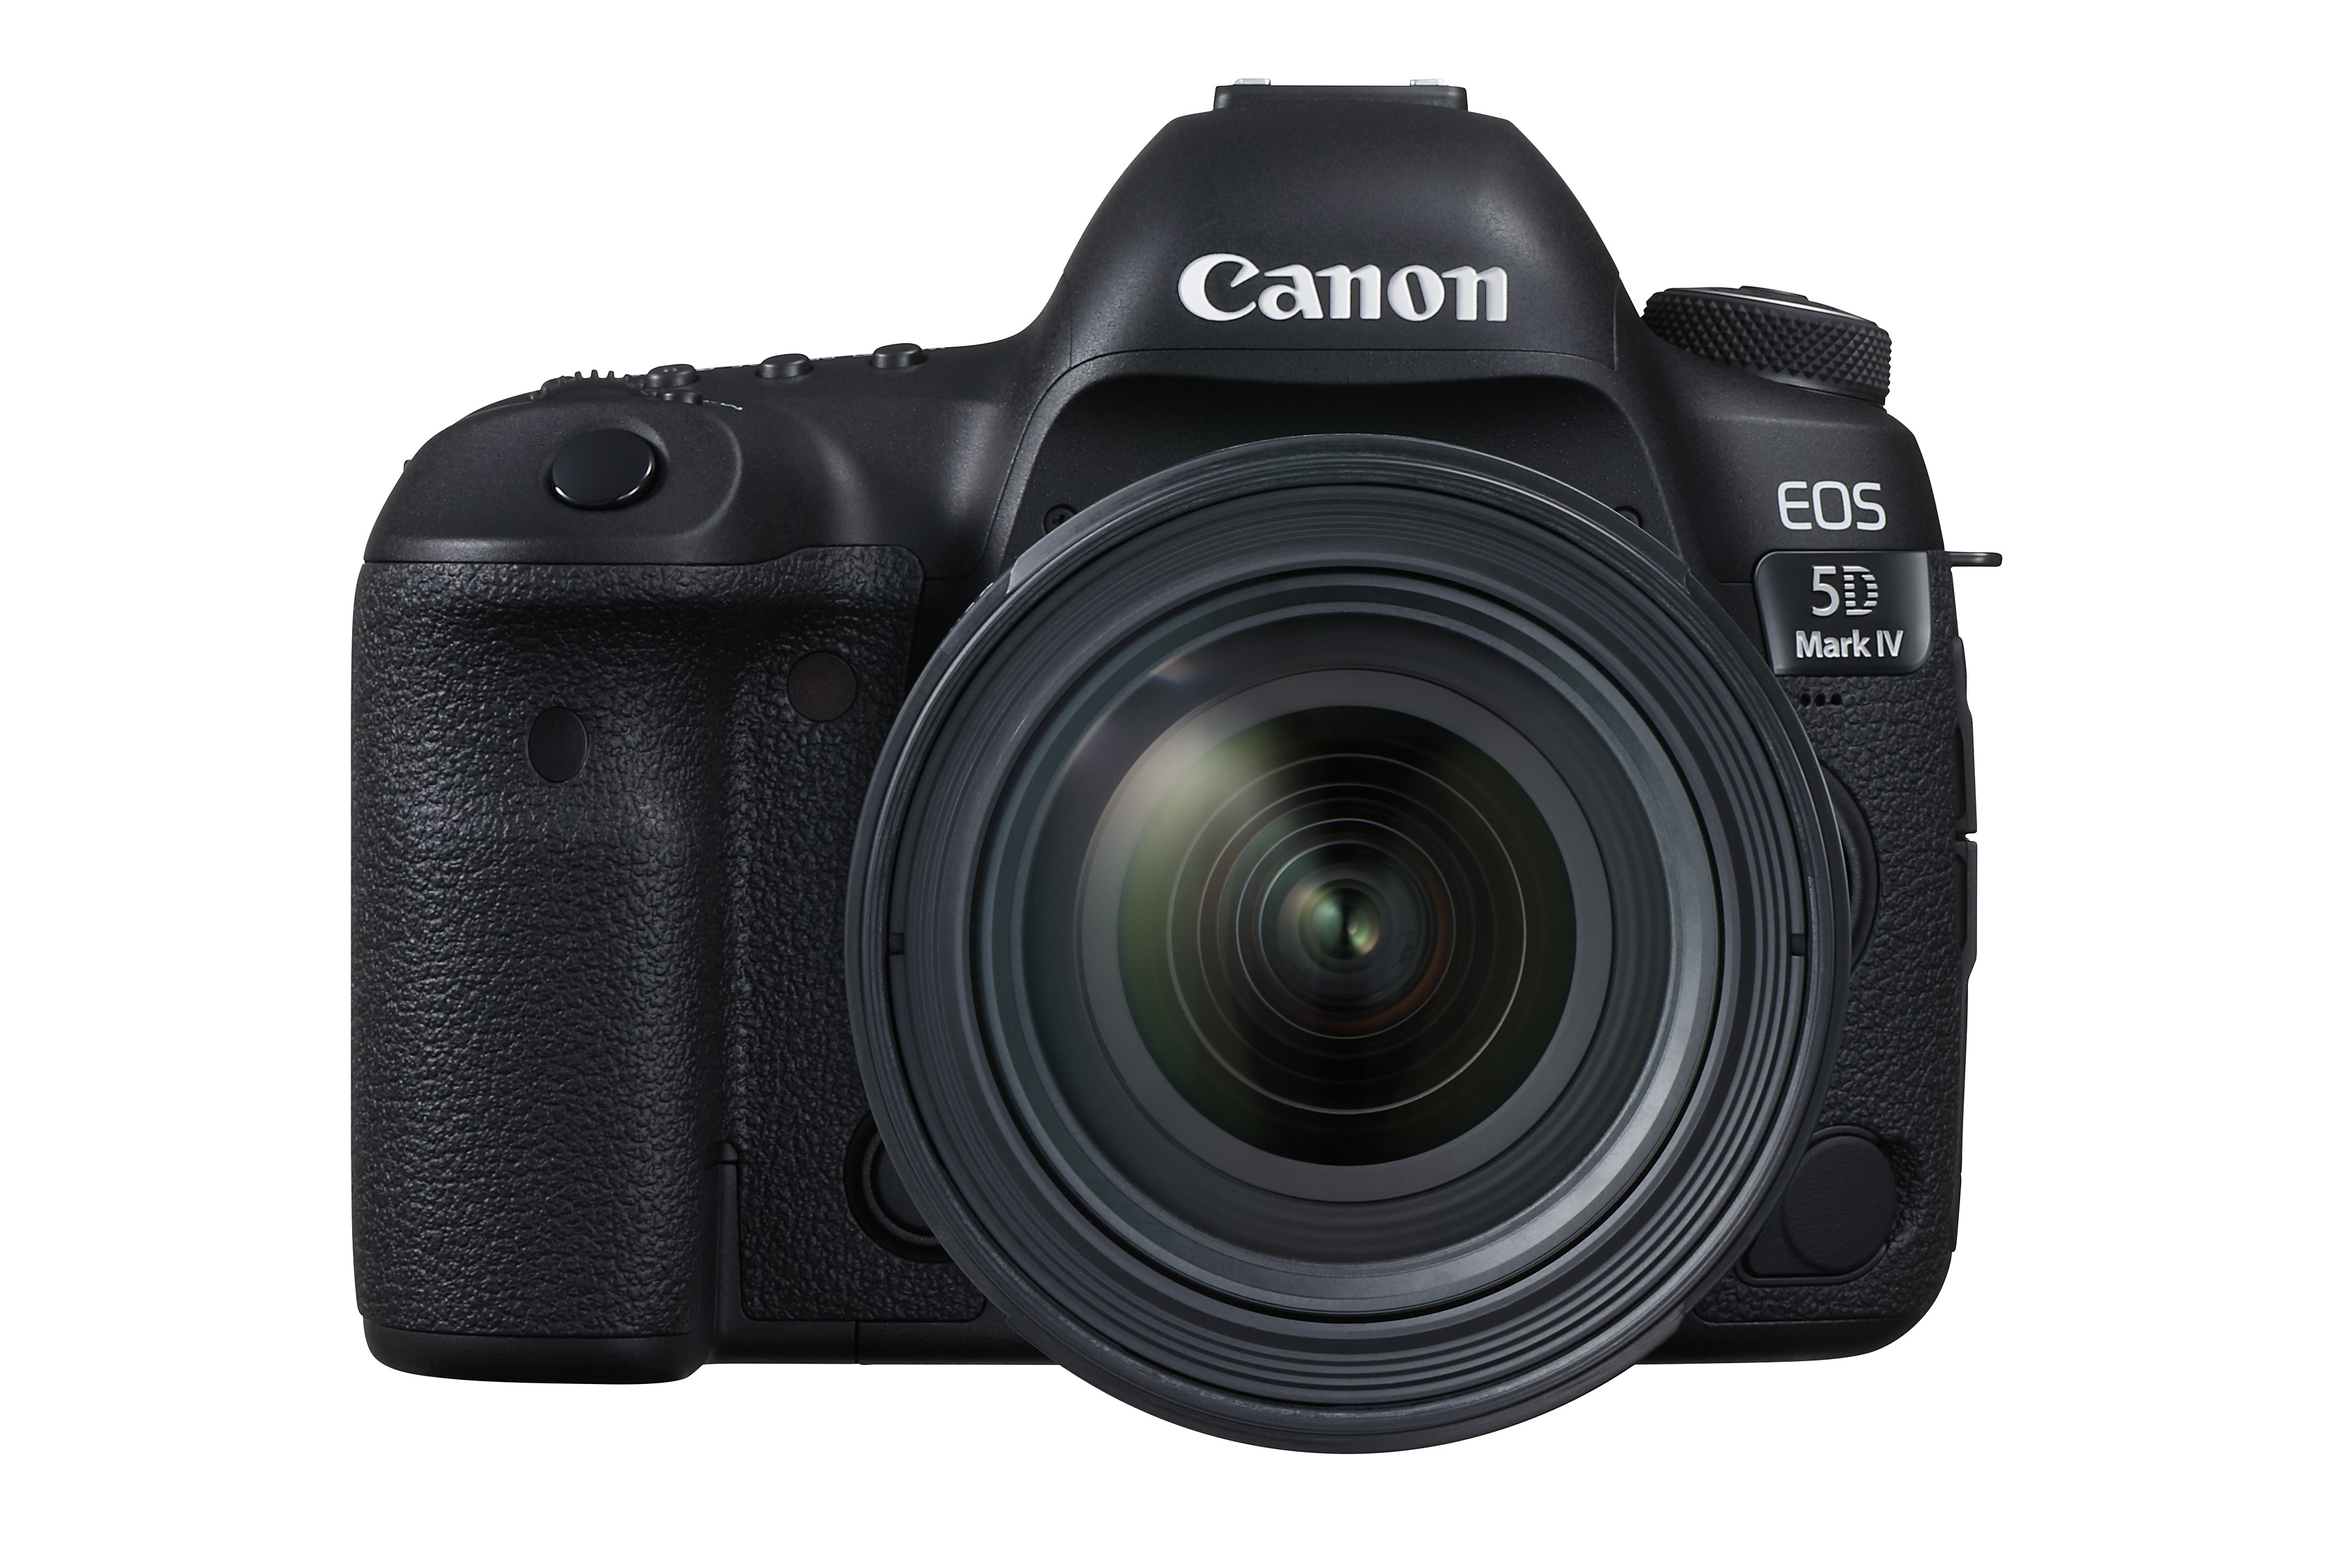 canon-eos-5d-mark-iv-is-the-new-age-dslr-camera